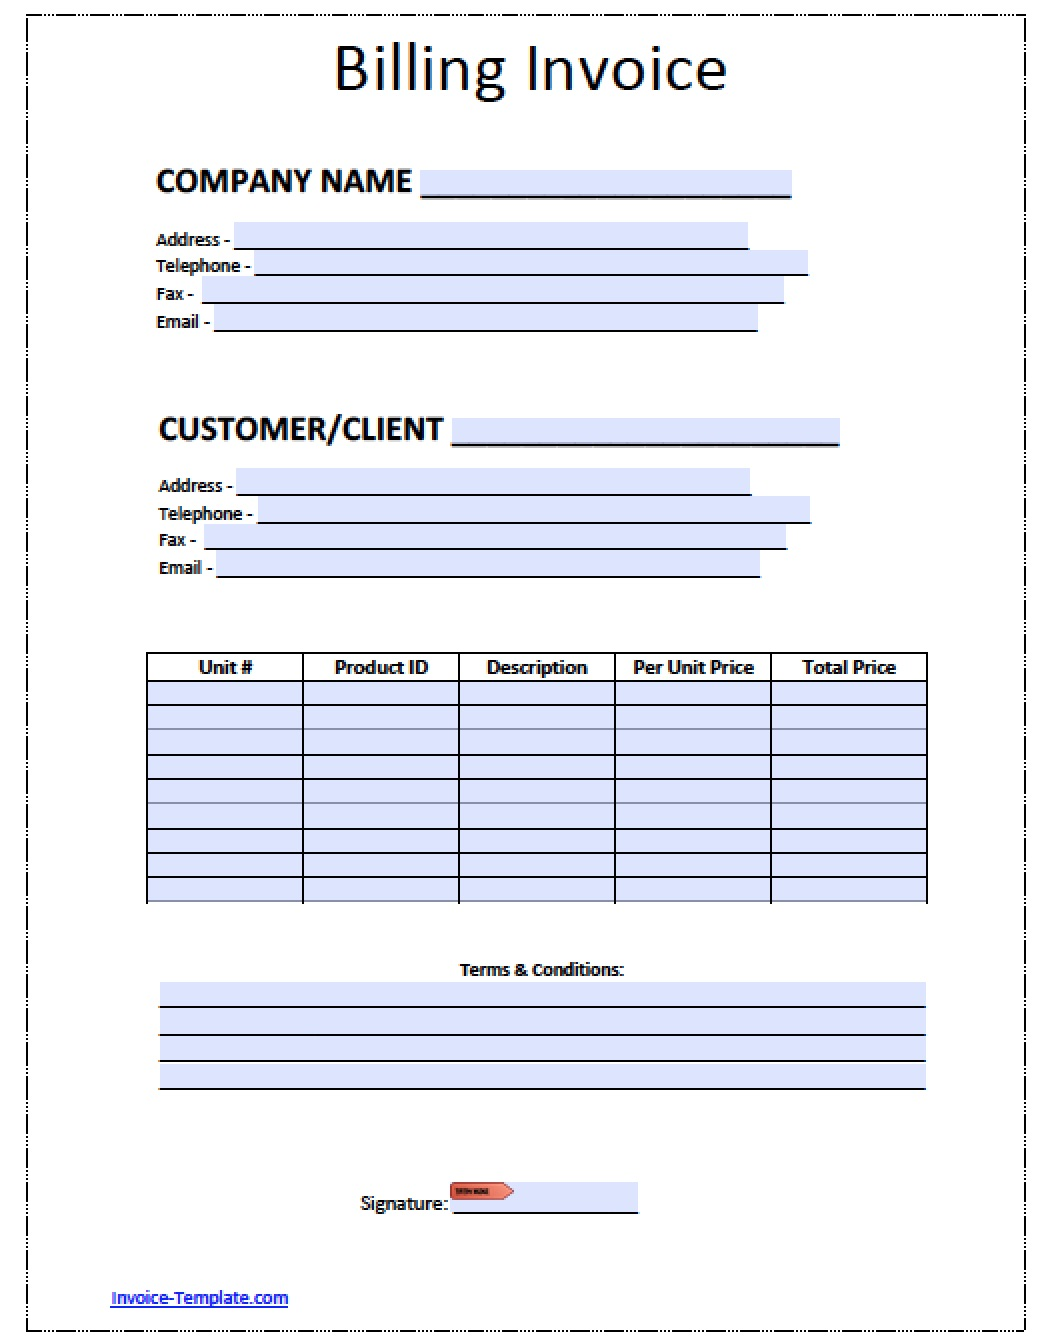 Free Blank Invoice Templates In PDF Word Excel - Rent invoice format in word t mobile online store